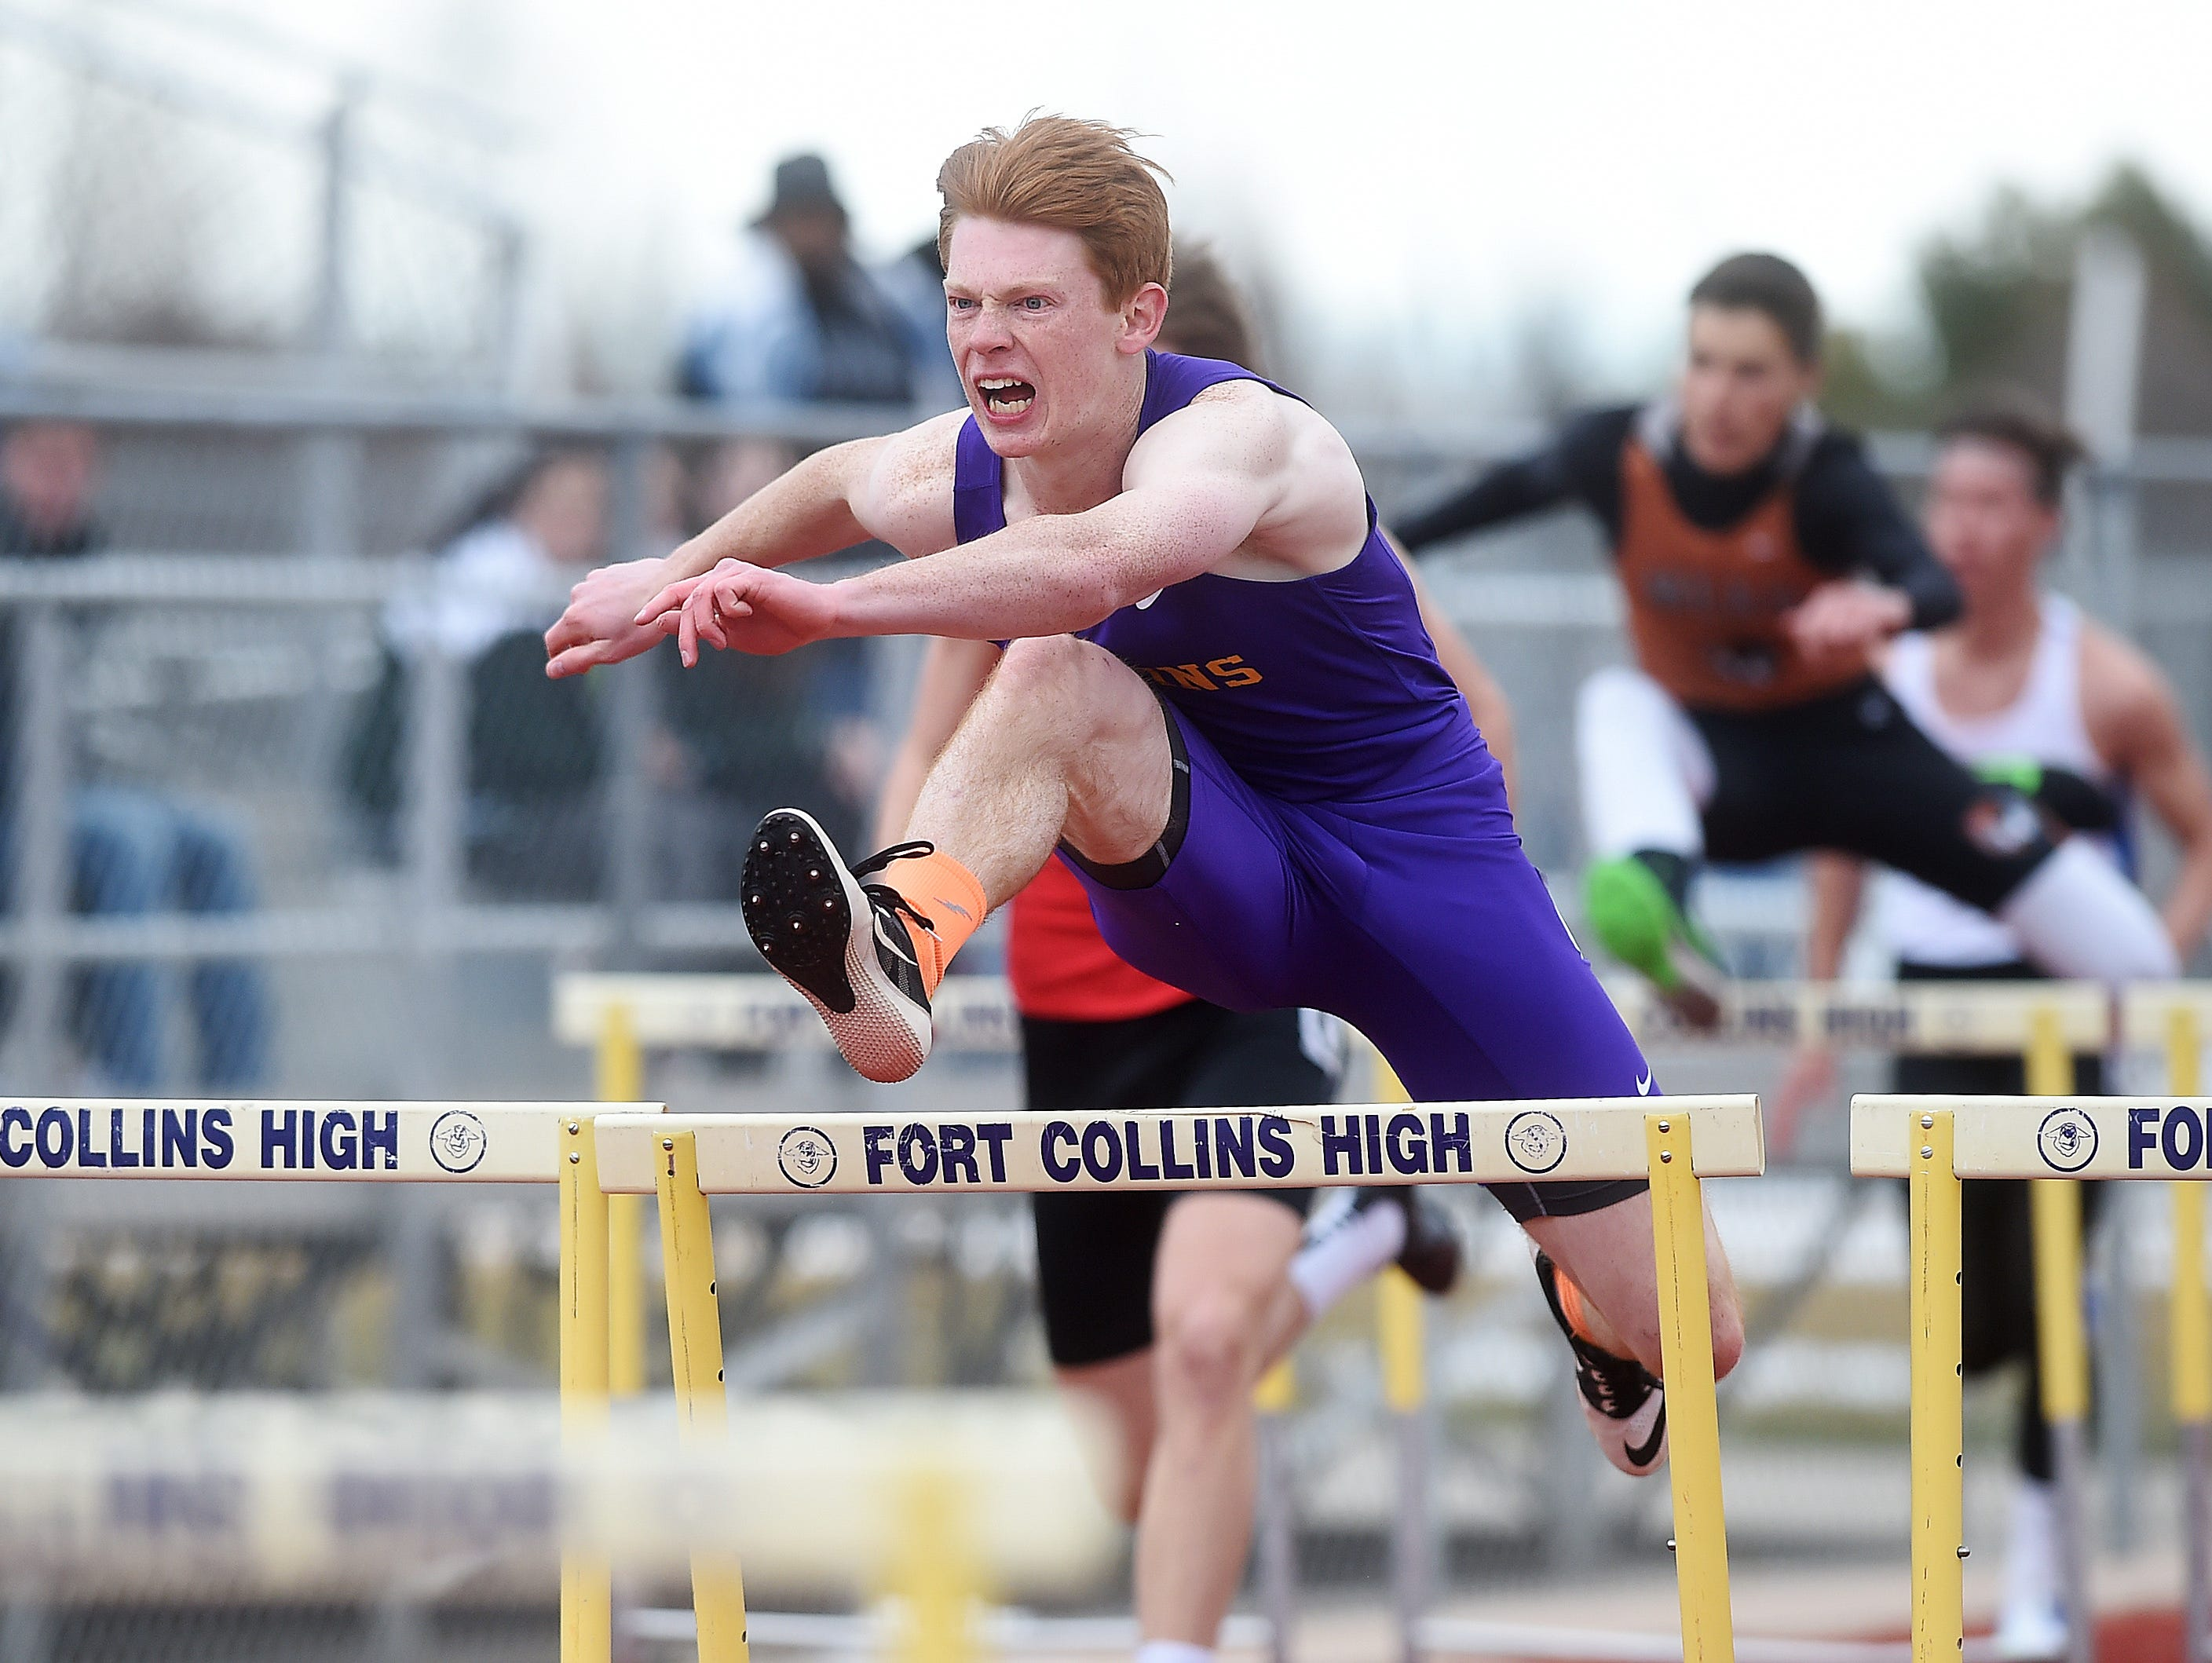 Fort Collins High School's Thomas Robillard competes in the 110-meter hurdle event during the Runners Roost Invite at Fort Collins High School on Friday, March 25, 2015. Robillard won the event in a personal-best time.